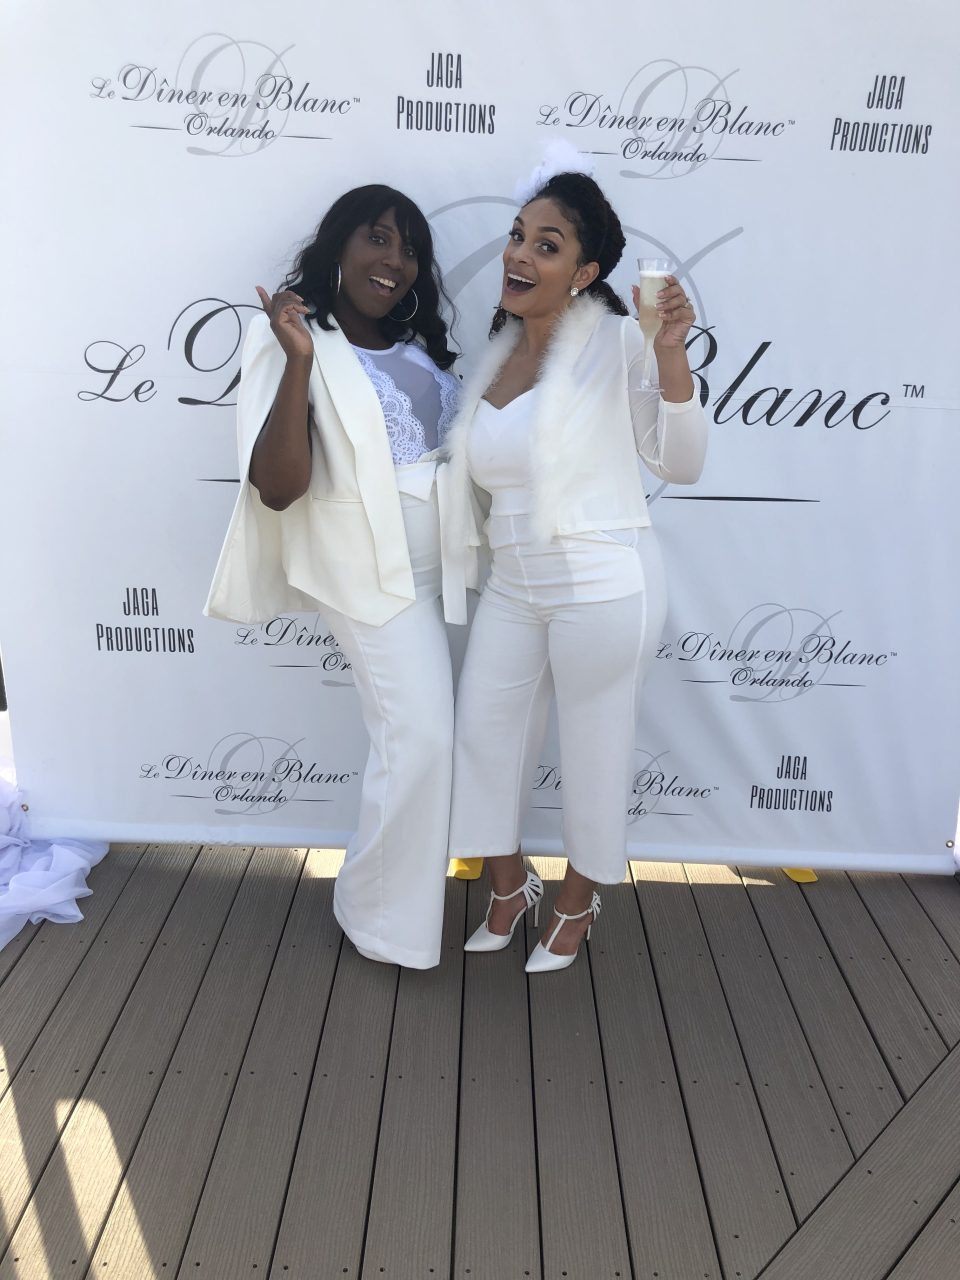 How To Prepare For An All-White Event In The Middle Of November-Tiffany Brown